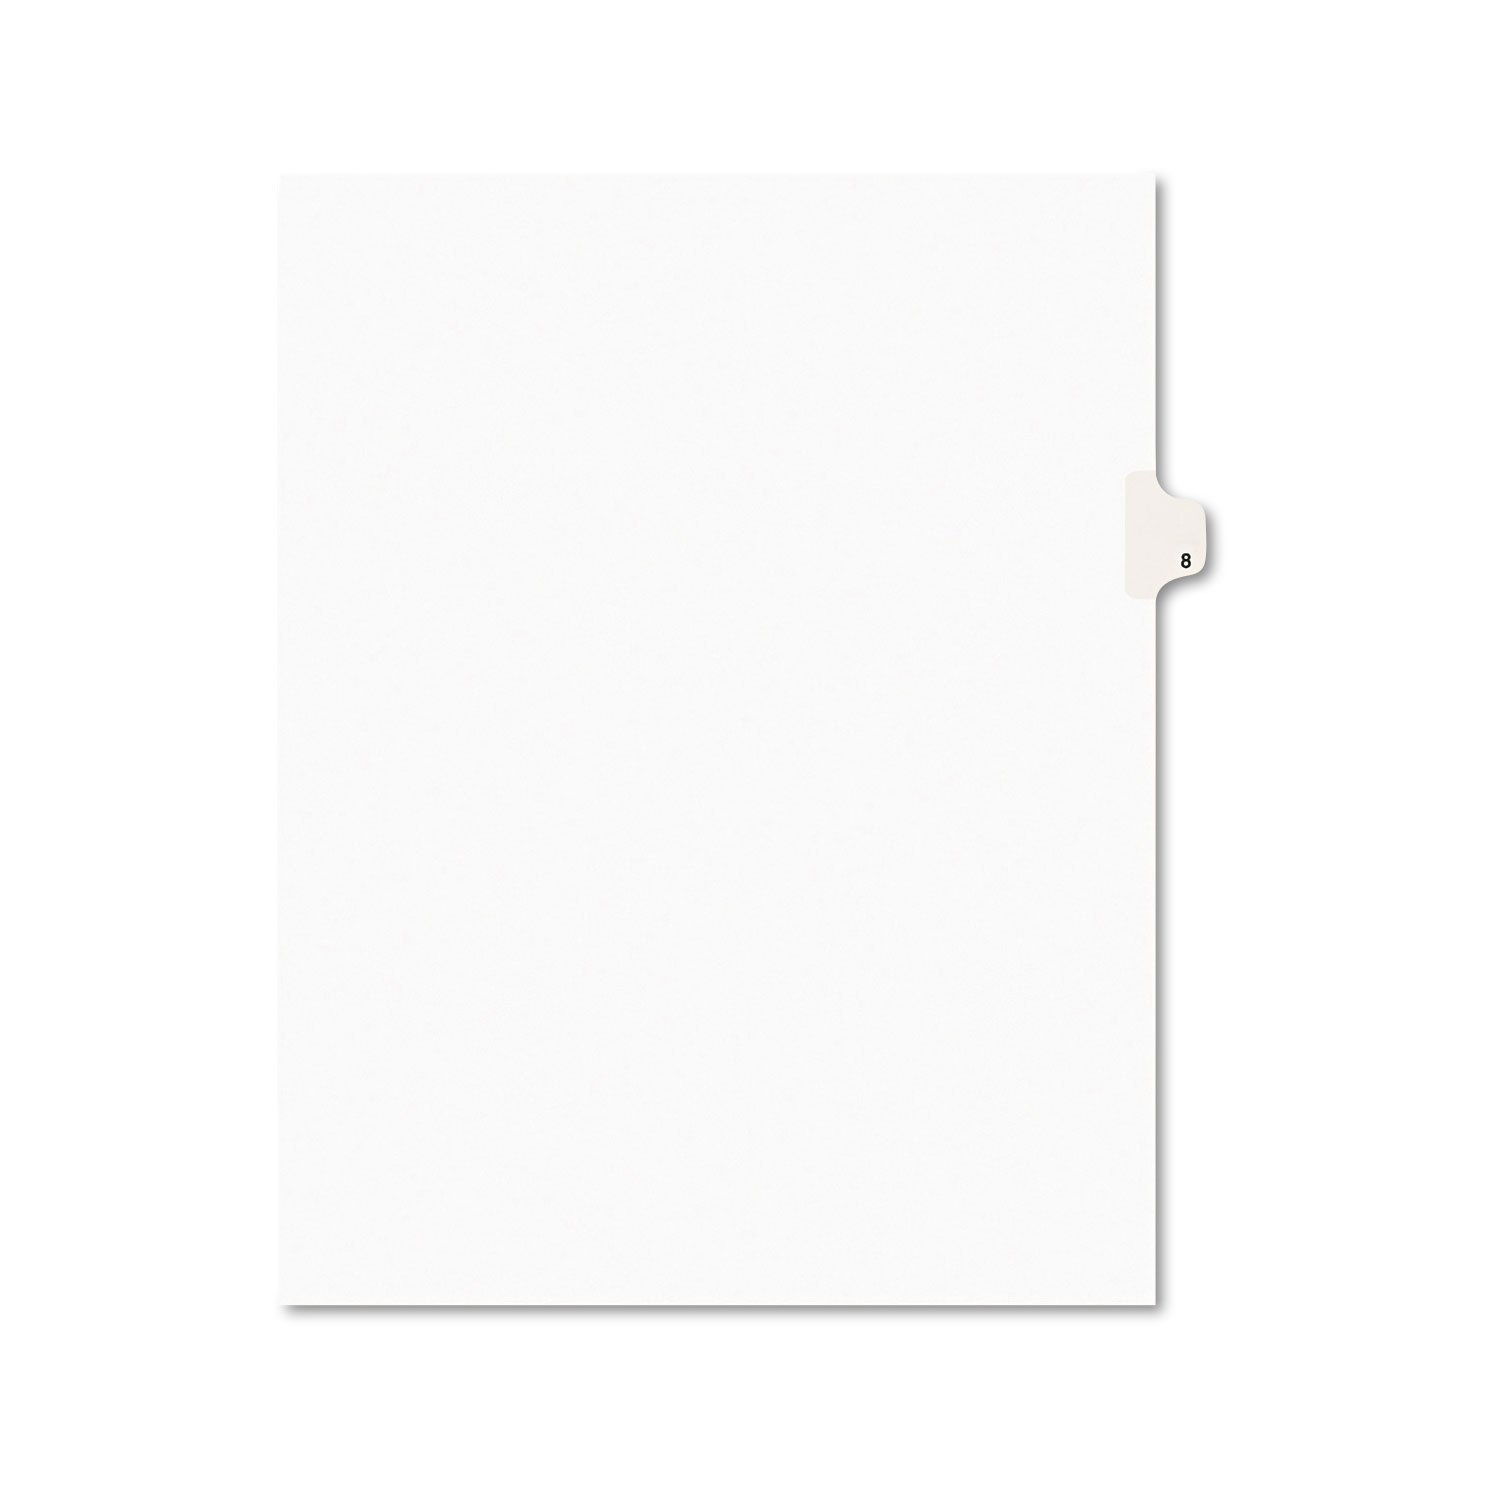 Avery Legal Exhibit Tab Dividers, Tab Title: 8, White, Letter, 25/Pack (11918) by AVERY